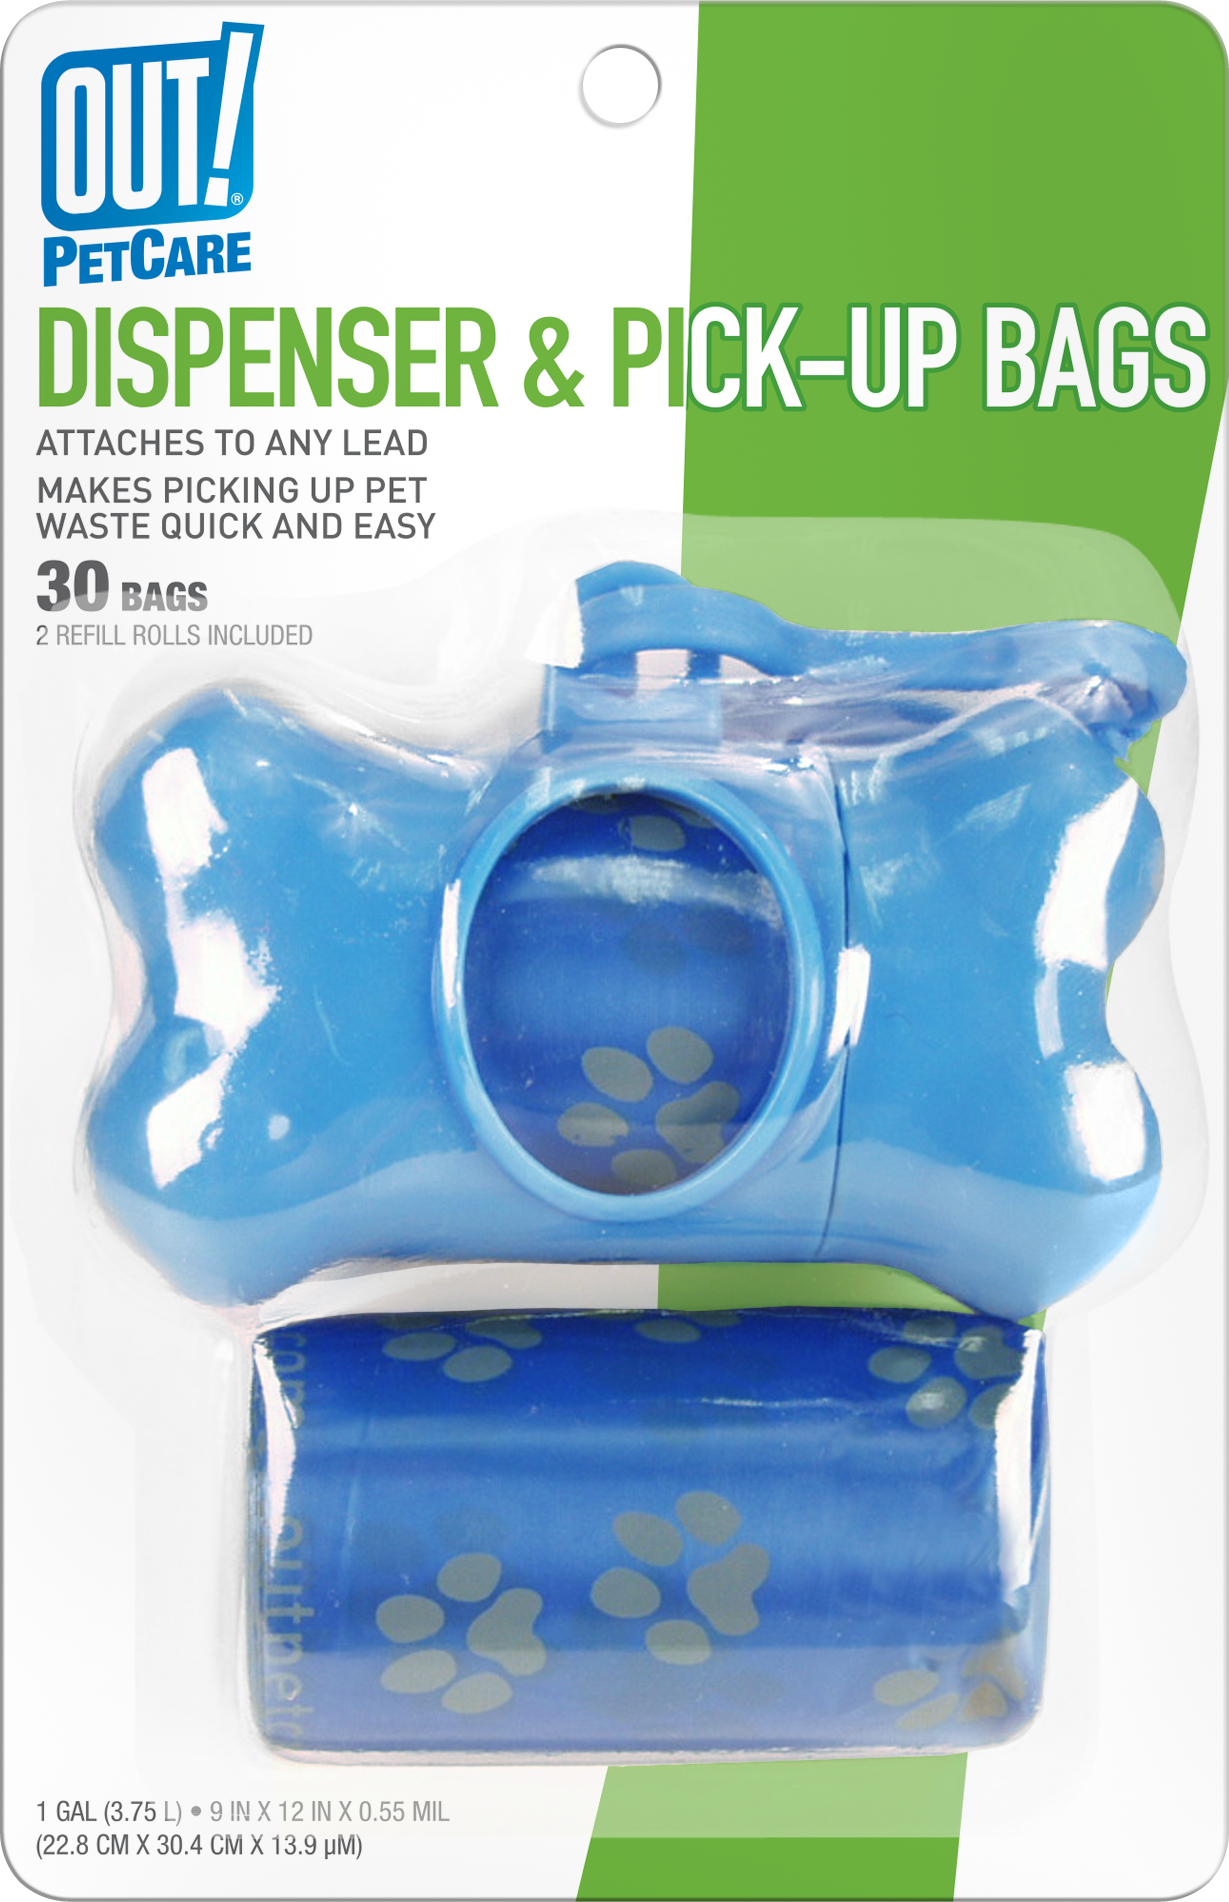 Out Petcare Blue Bone Dispenser with 30 Waste Pick-Up Bags